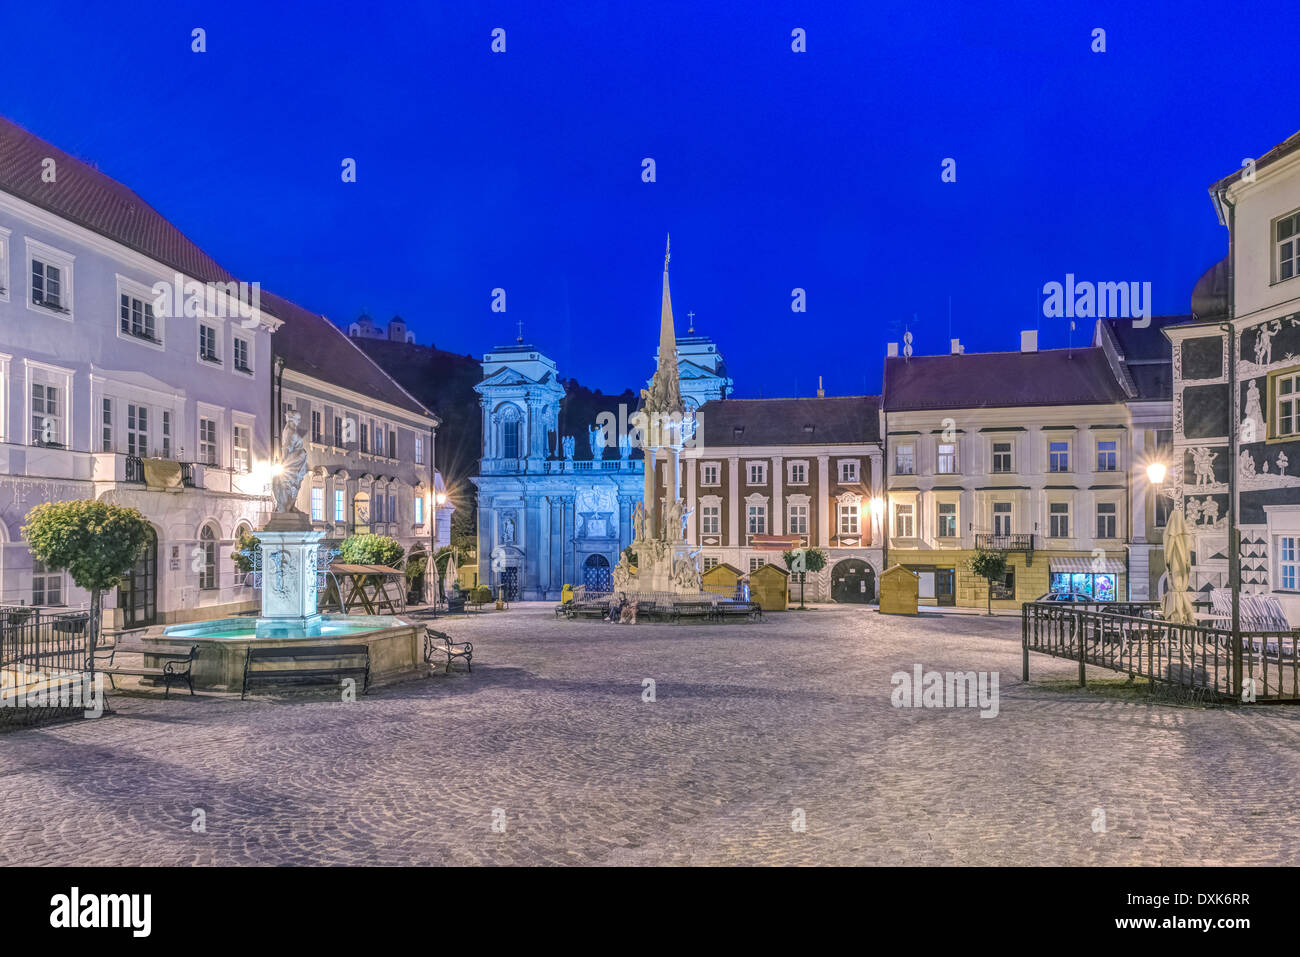 Illuminated piazza at dawn, Prague, Central Bohemia, Czech Republic - Stock Image